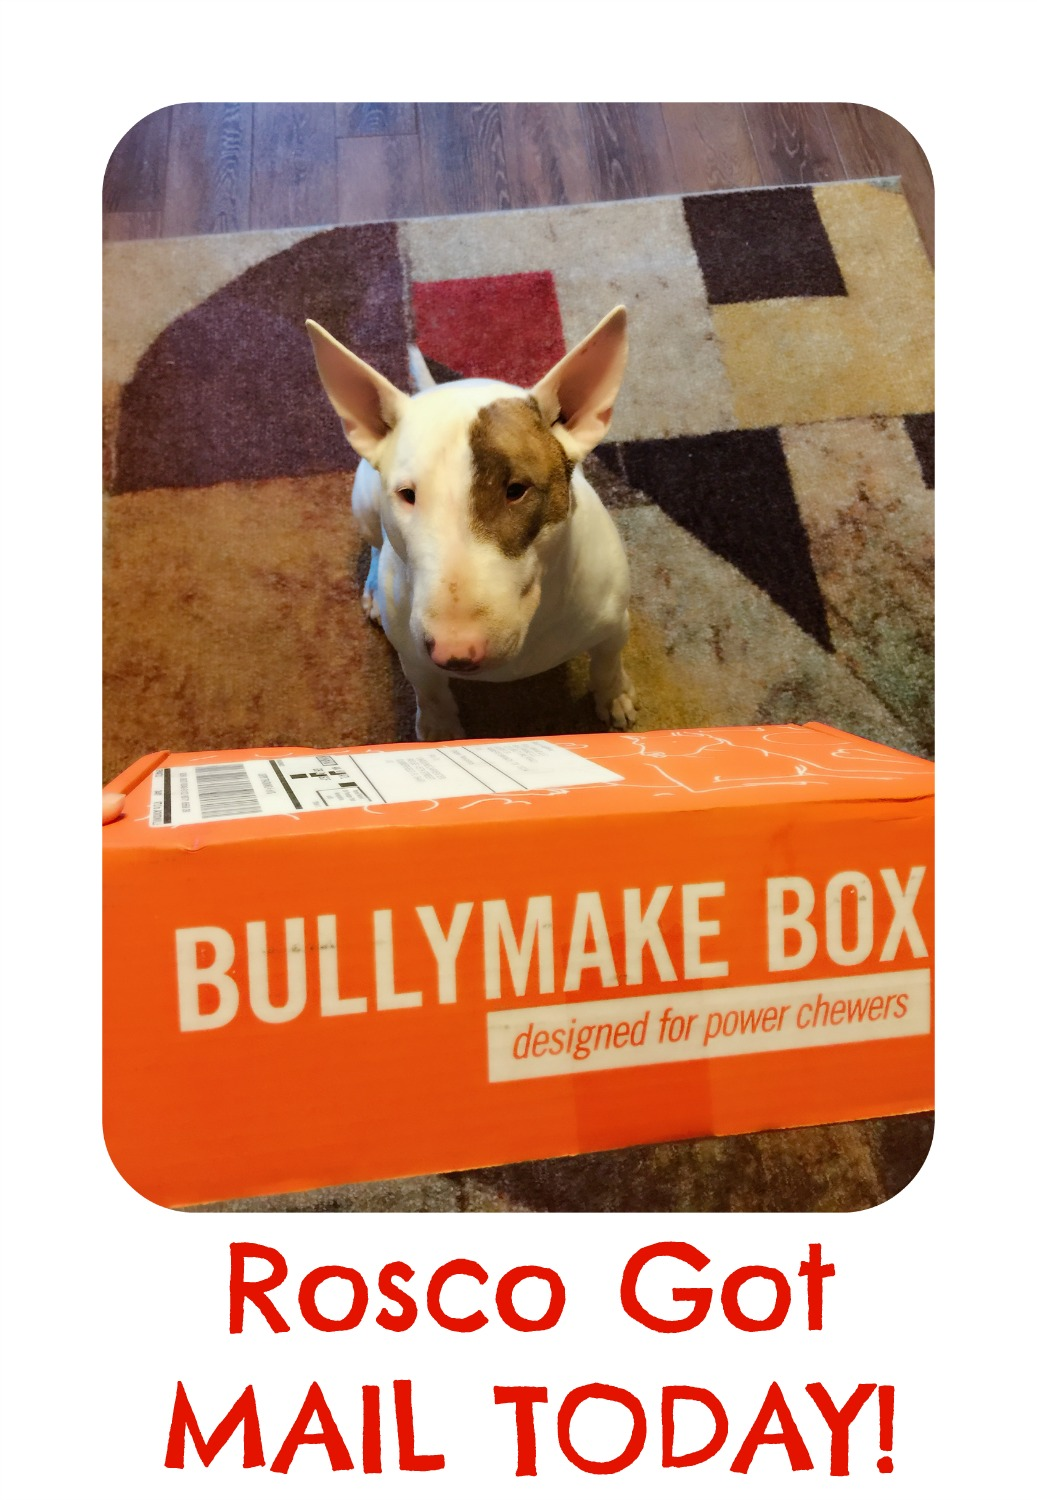 Rosco got mail from Bullymake Box!  He LOVED it!